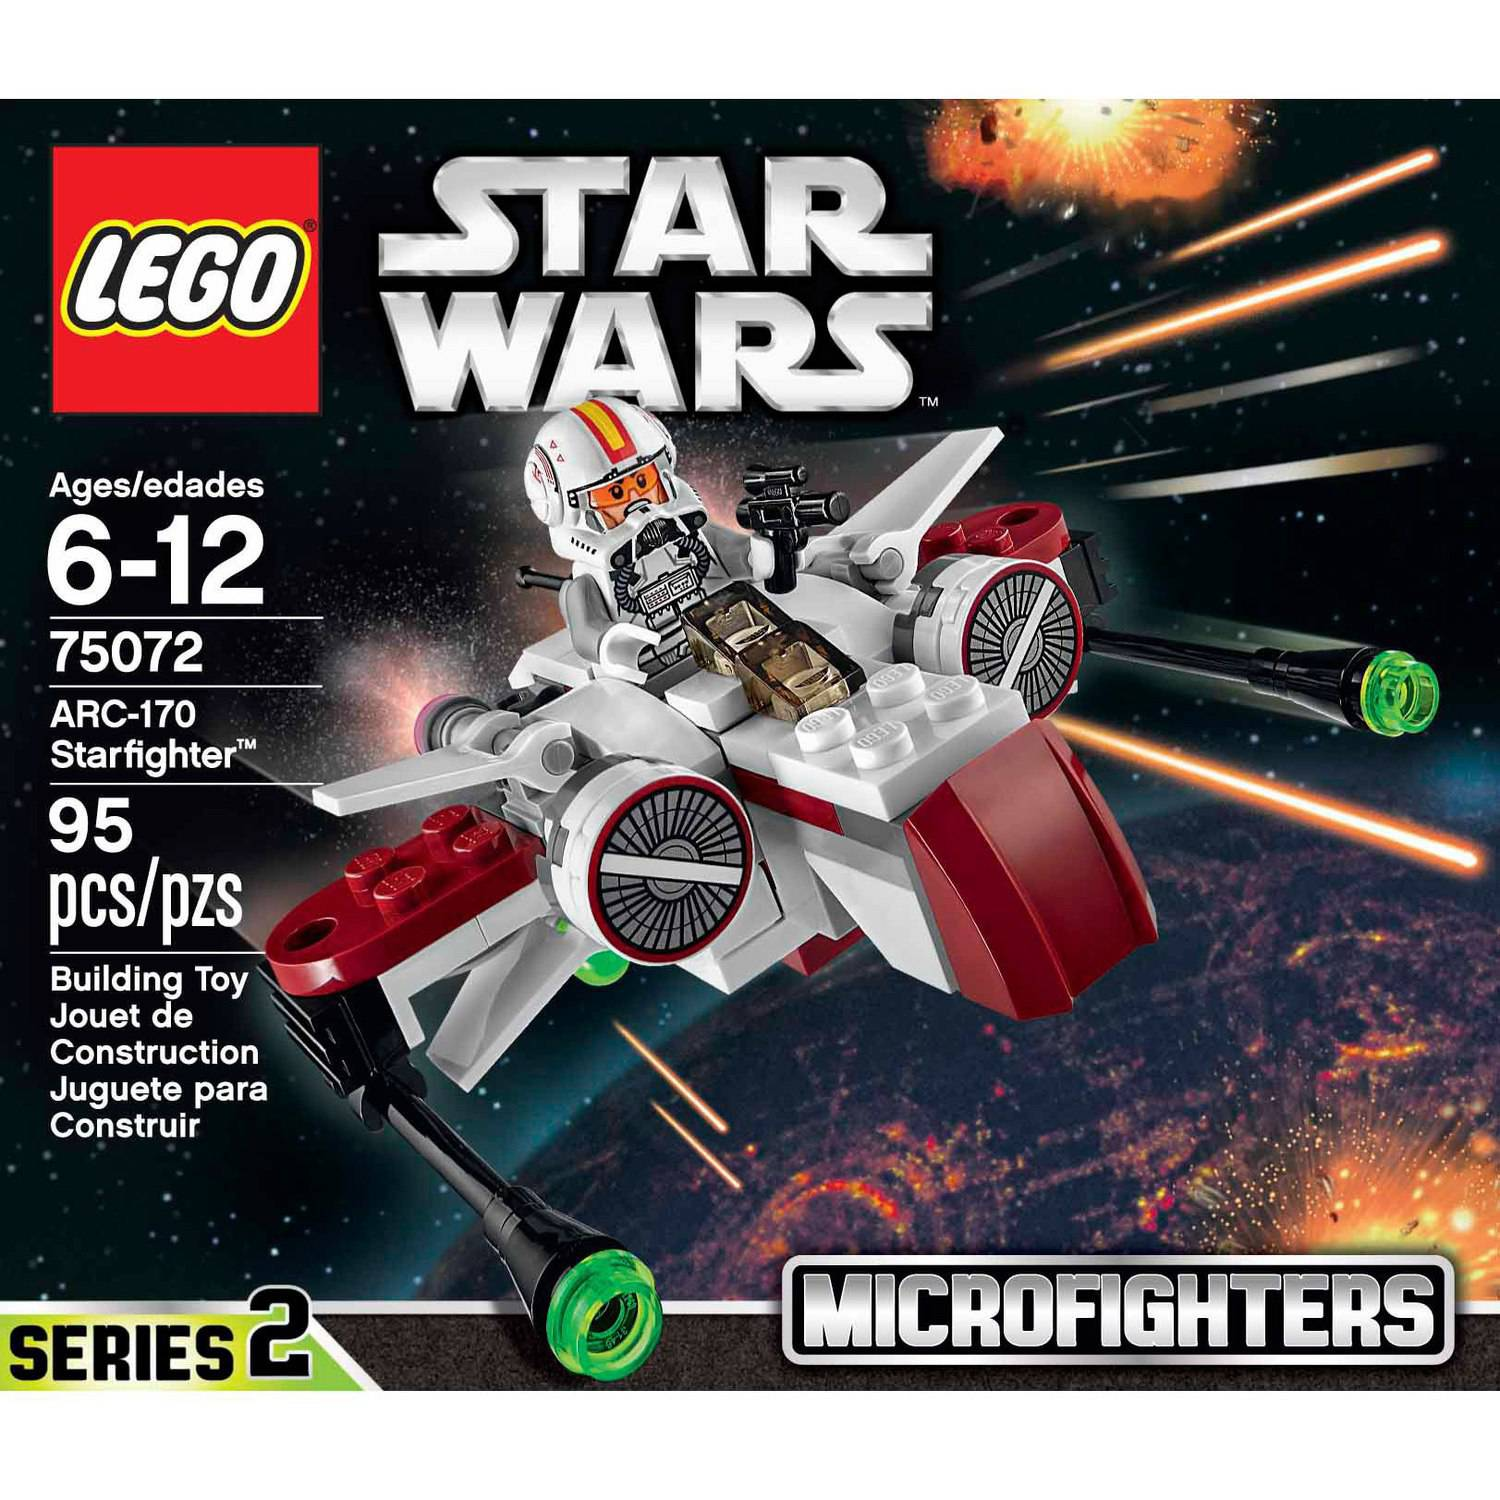 LEGO Star Wars ARC-170 Starfighter